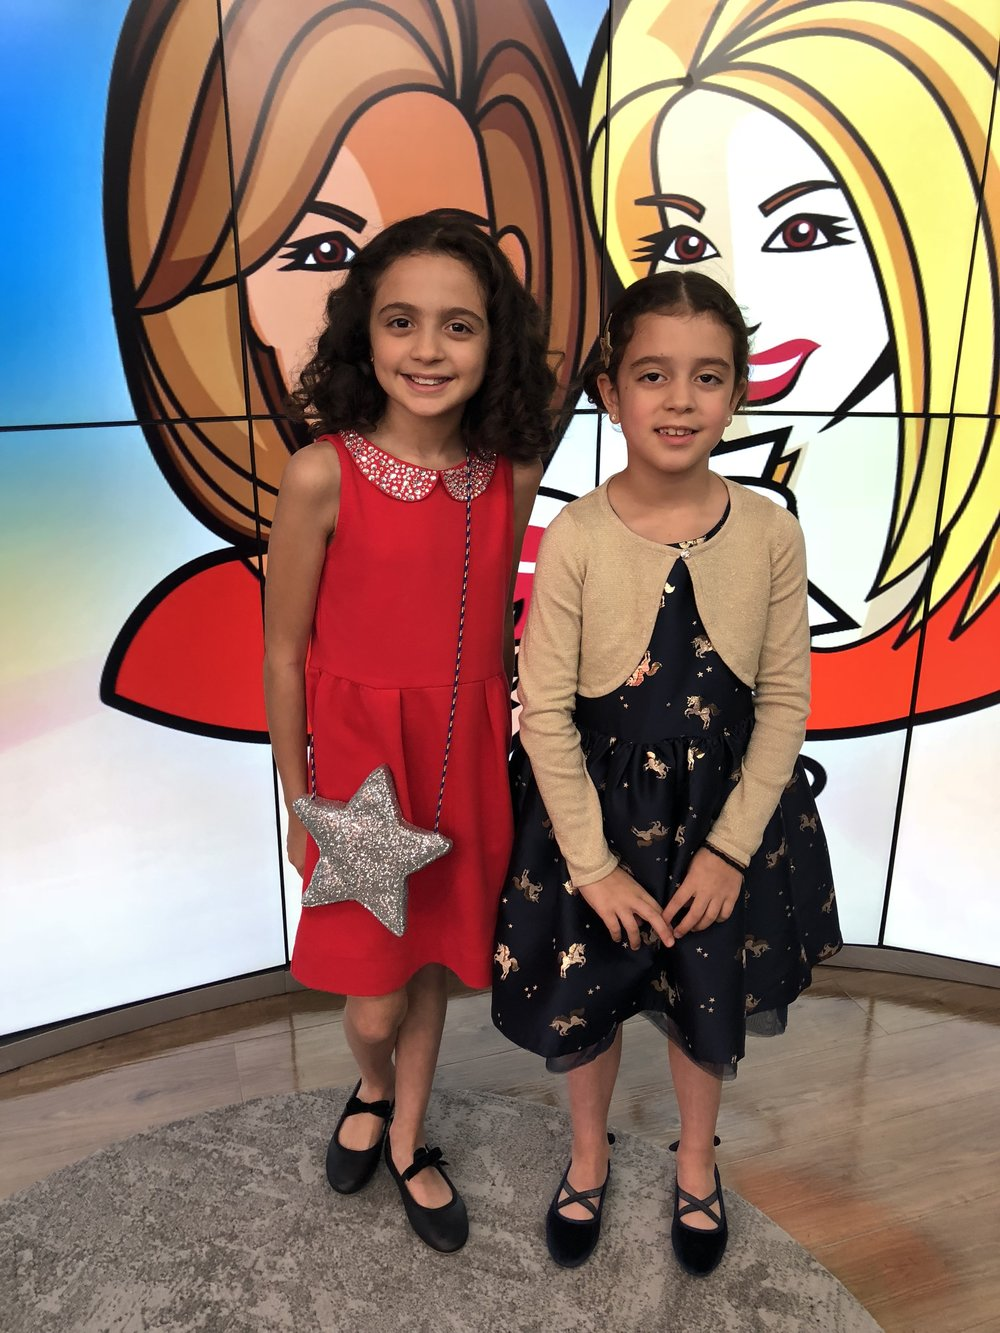 Holiday Family Fashion by fashion expert Amy E. Goodman embellished and jacquard by fashion expert Amy E. Goodman